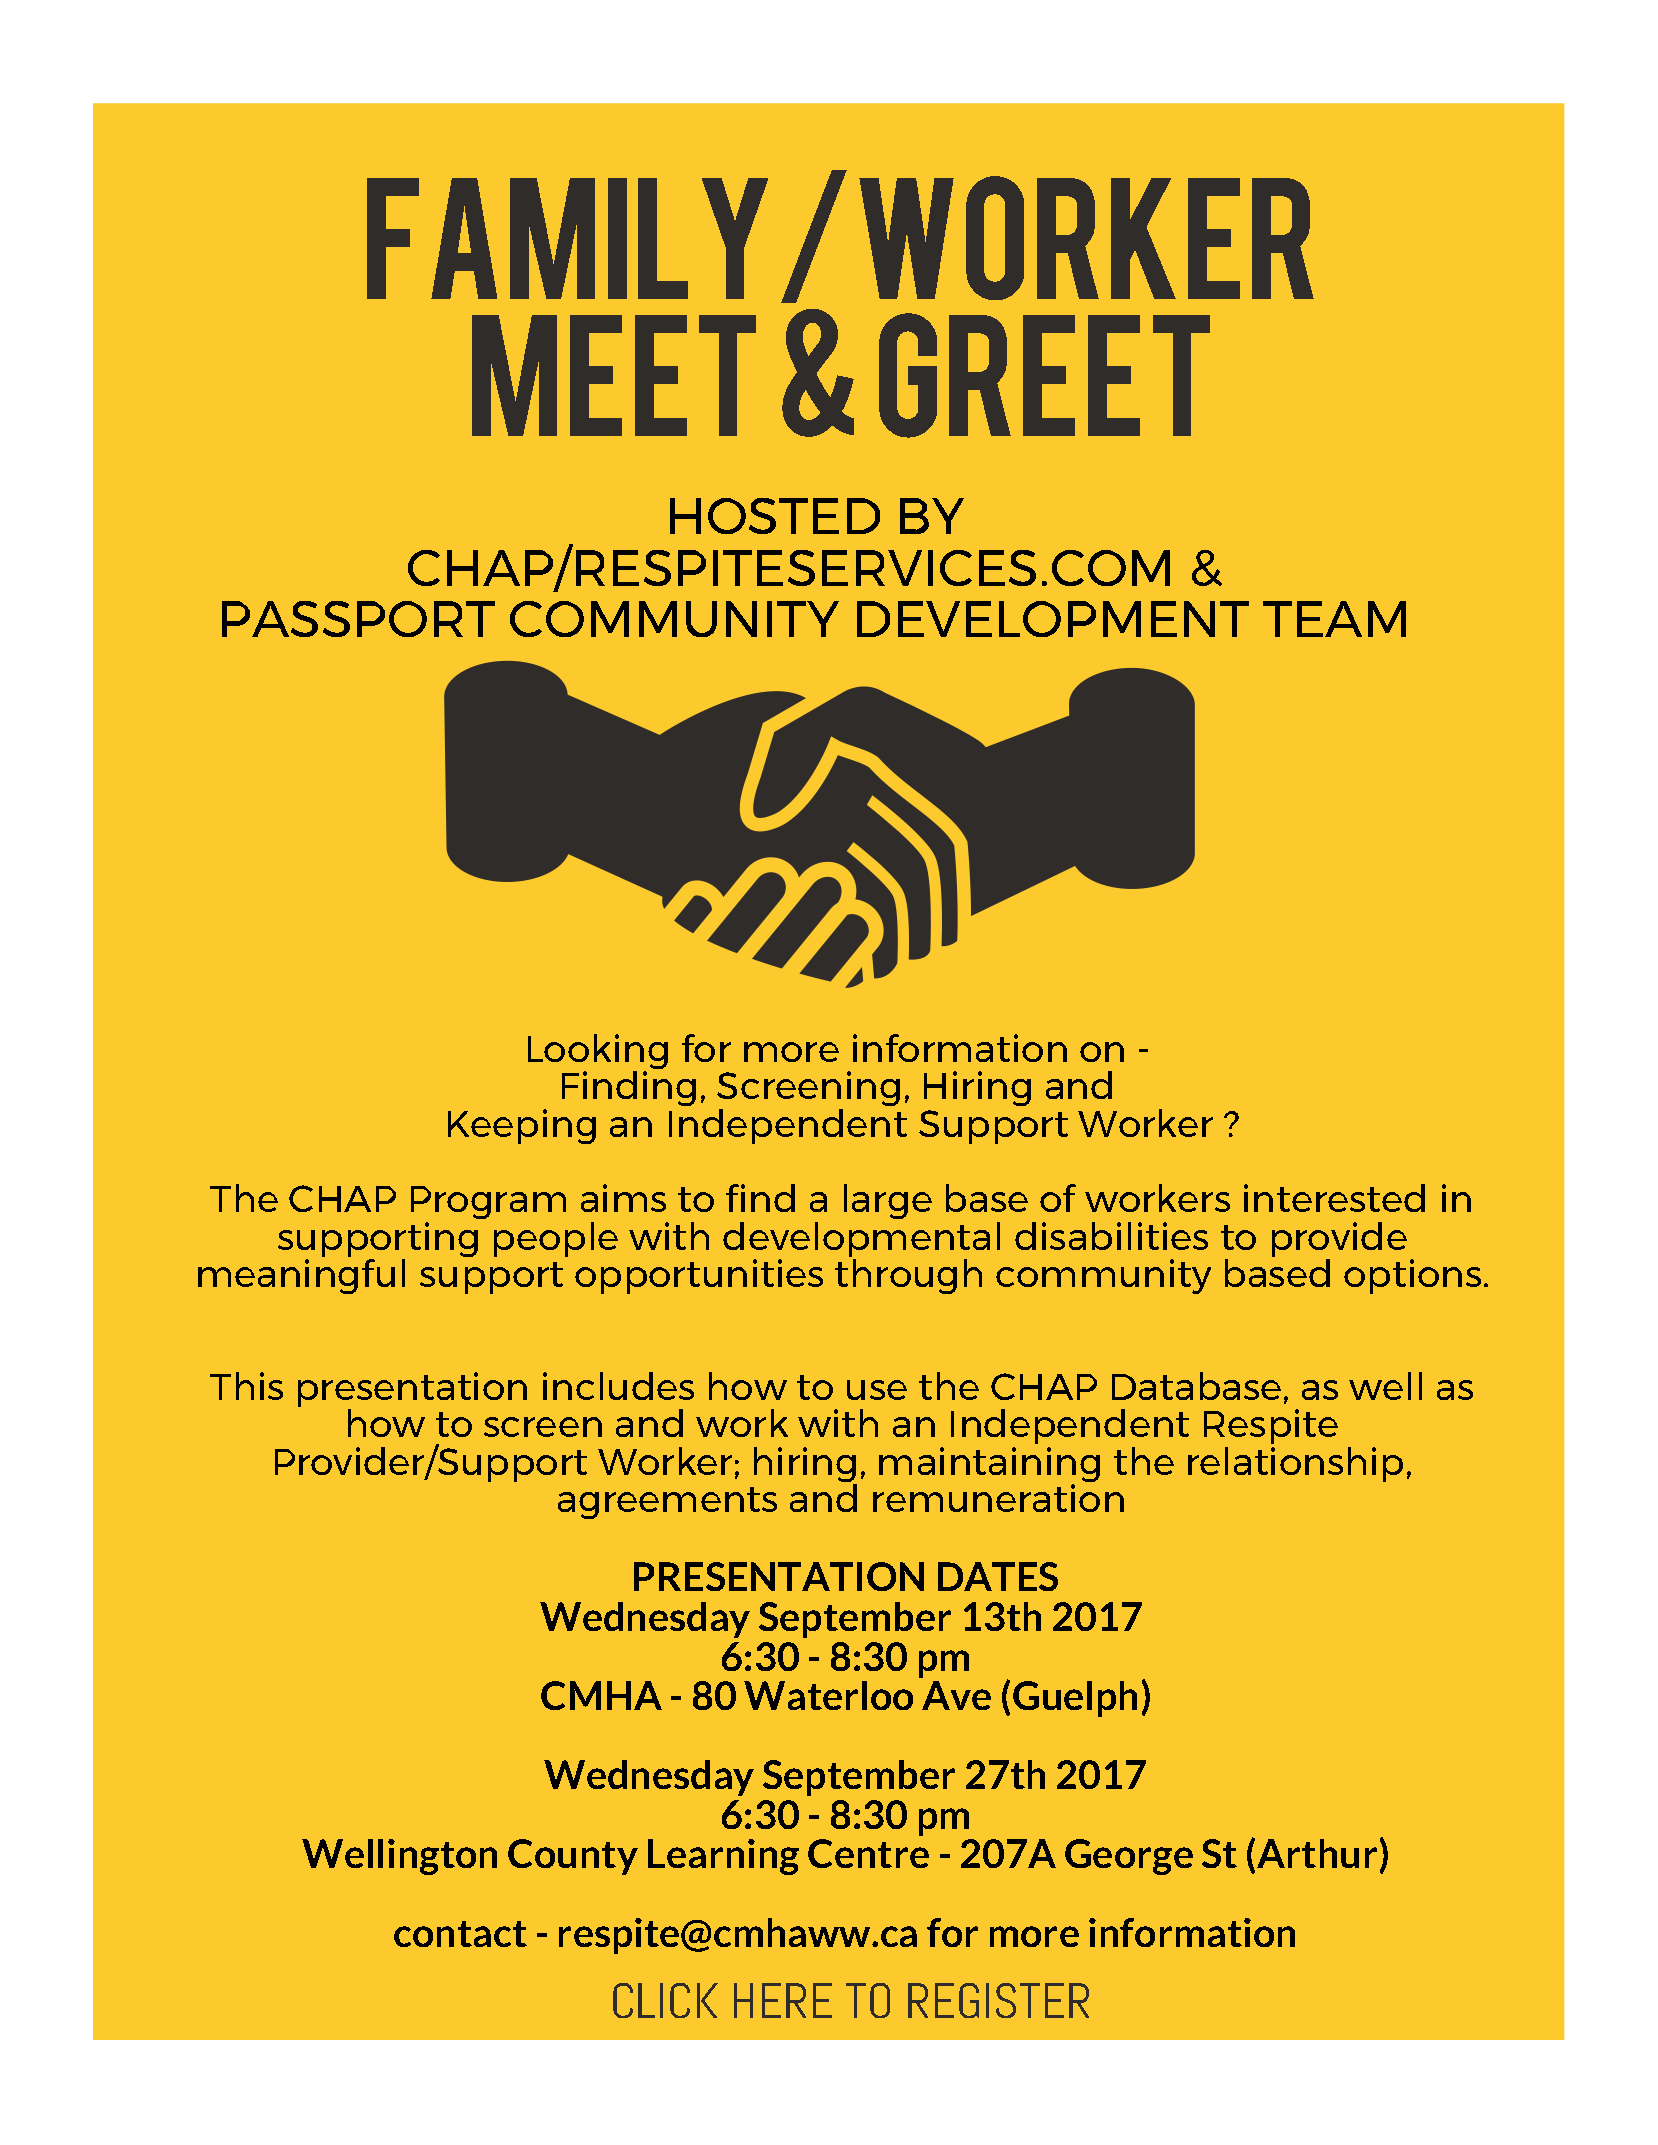 CMHA Meet and Greet